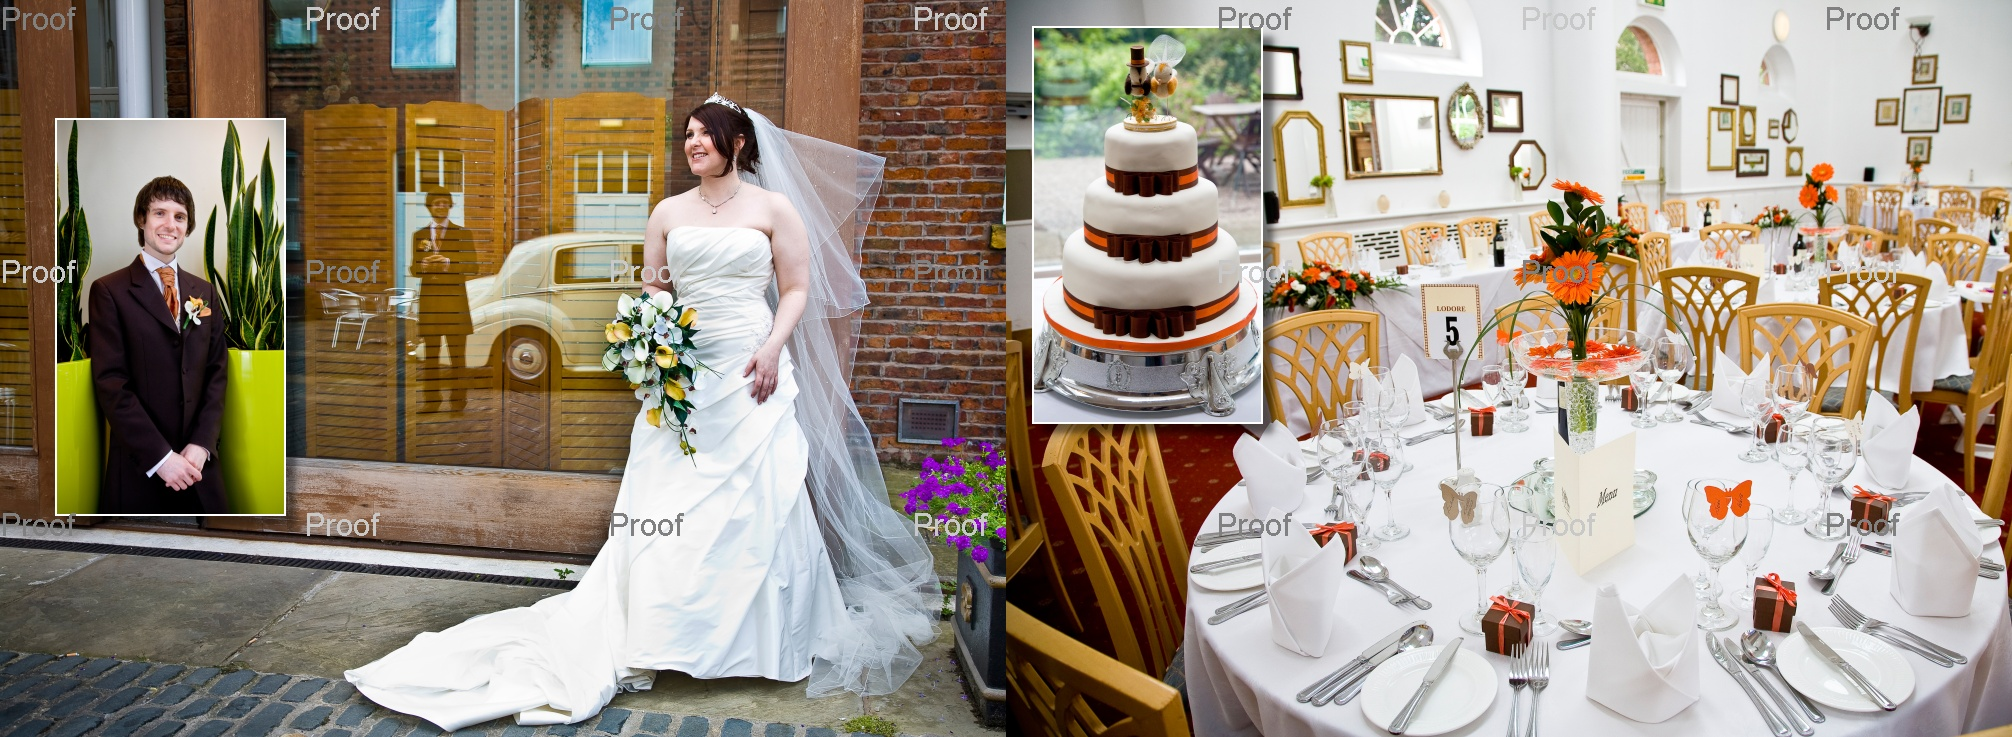 pages 40-41 of storybook album wedding reception at Chancellors Hotel and Conference Centre in Manchester